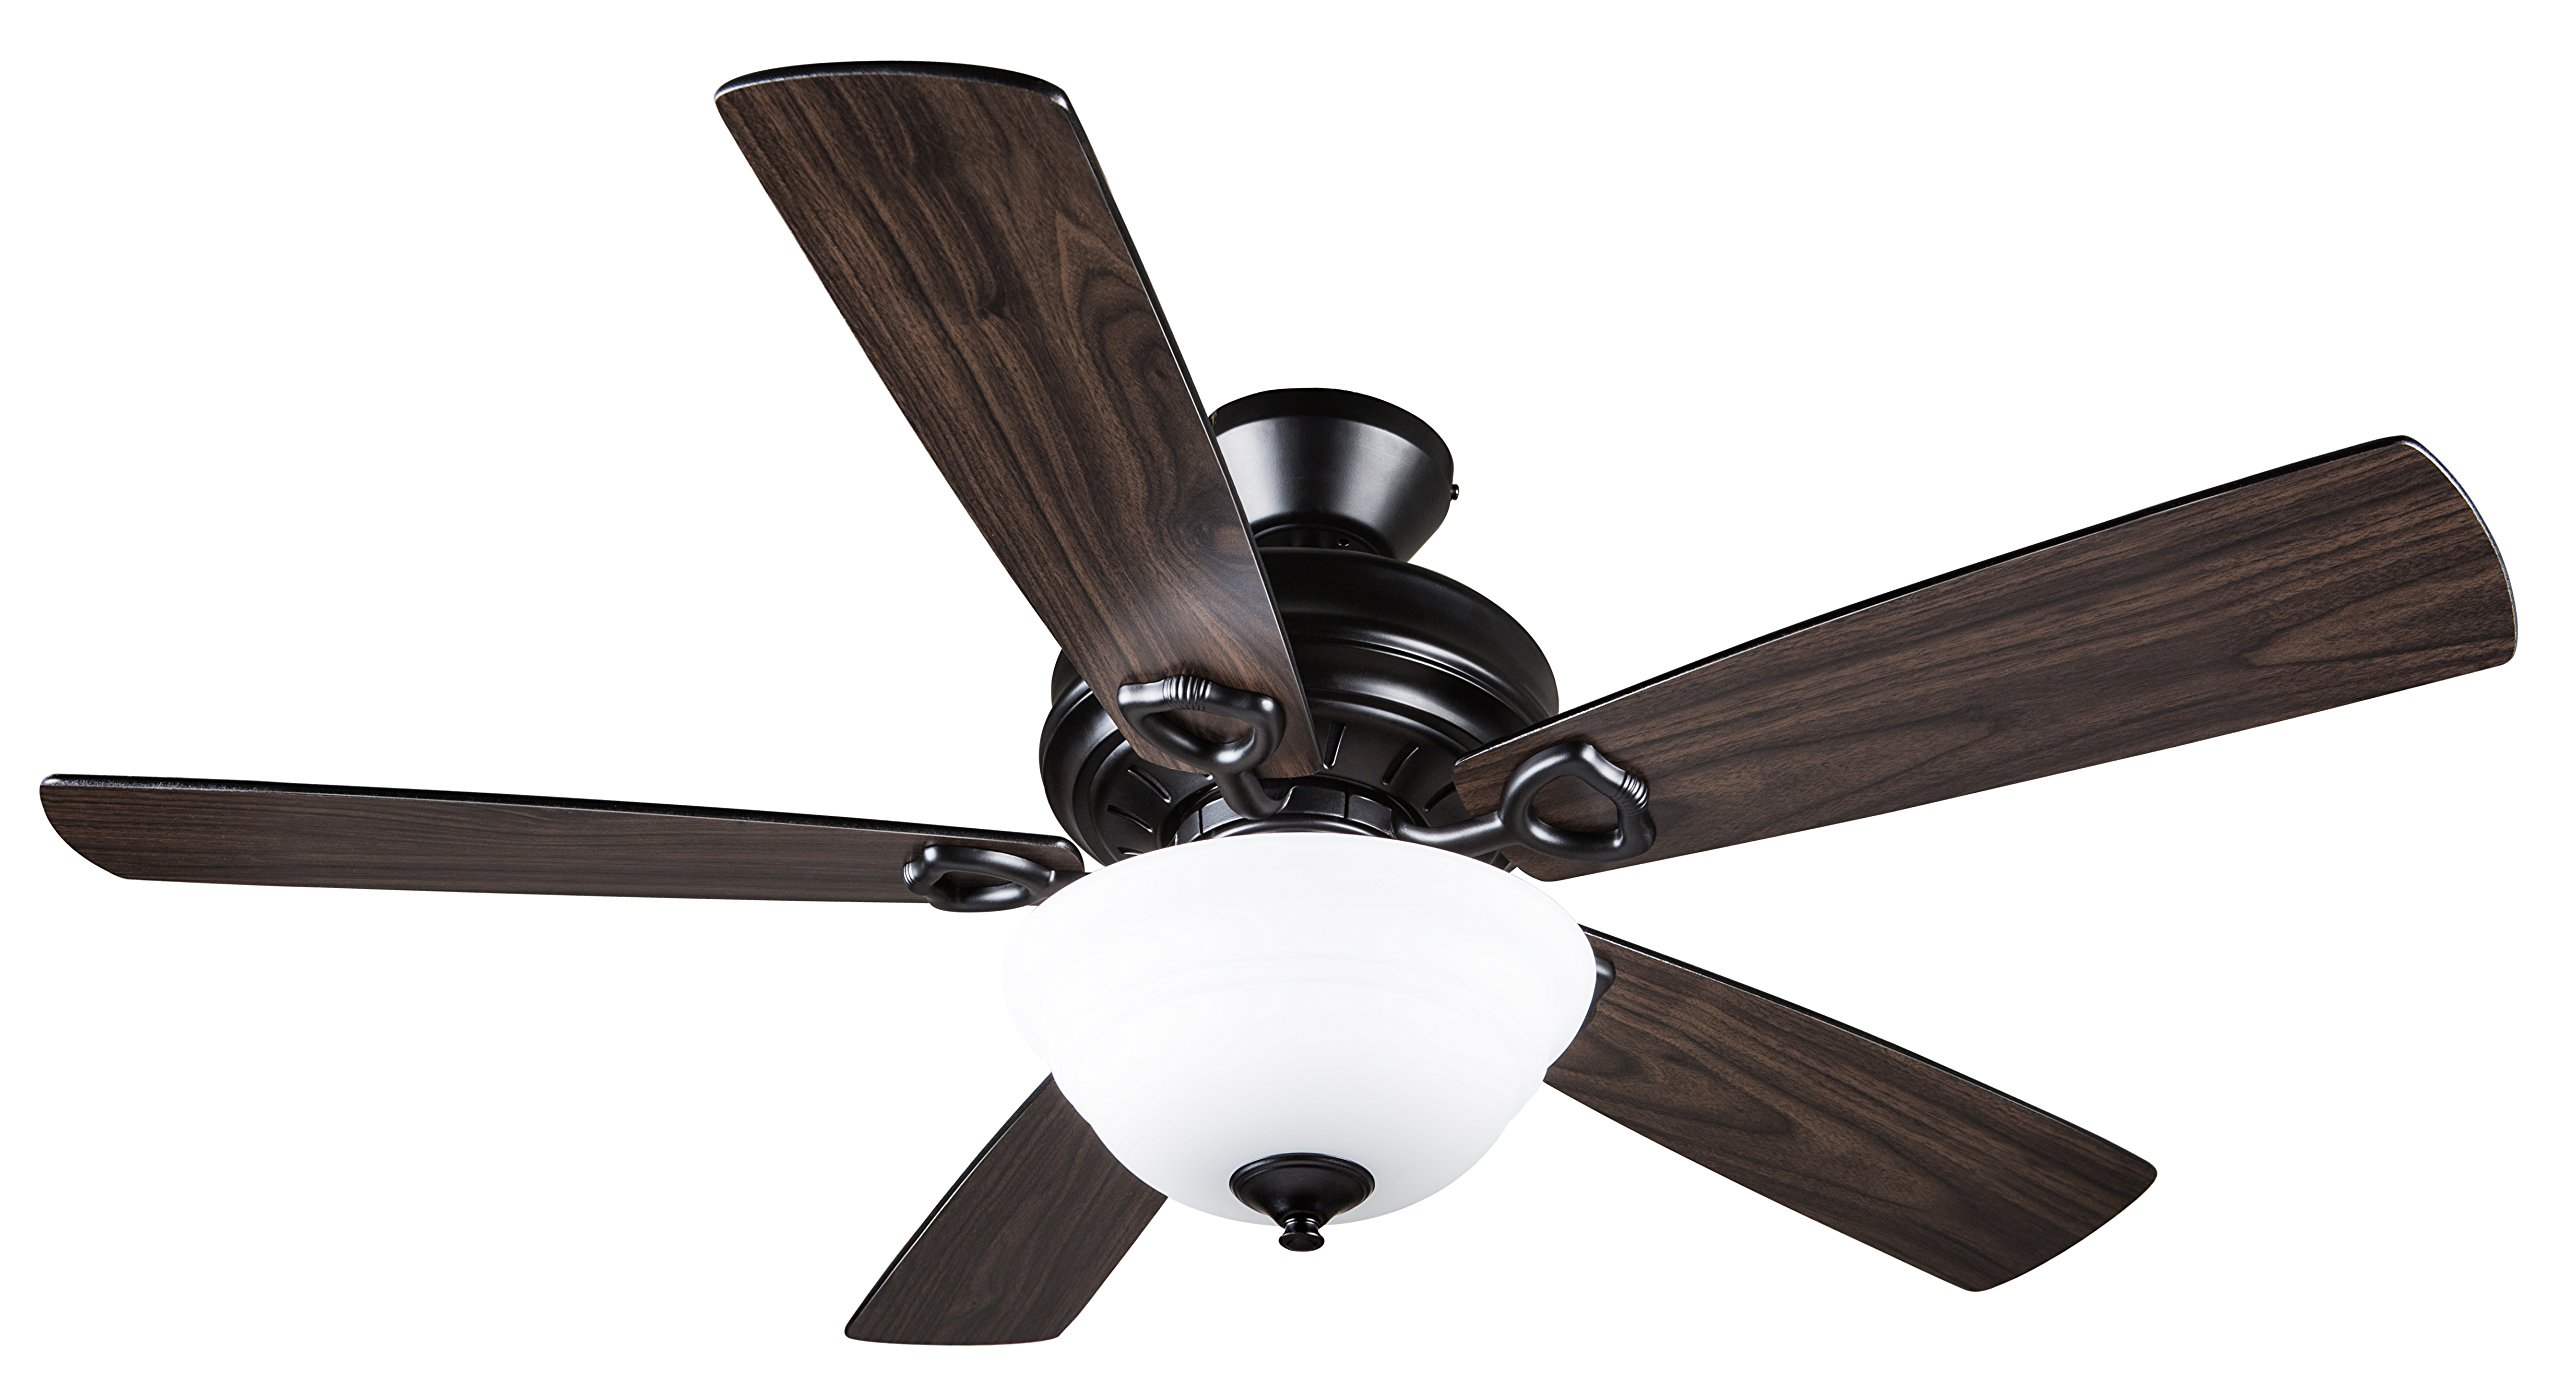 Hyperikon 52 Inch Ceiling Fan with Remote Control, Black Ceiling Fan, Five Reversible Blades and Frosted Dome Light - Bulb Not Included